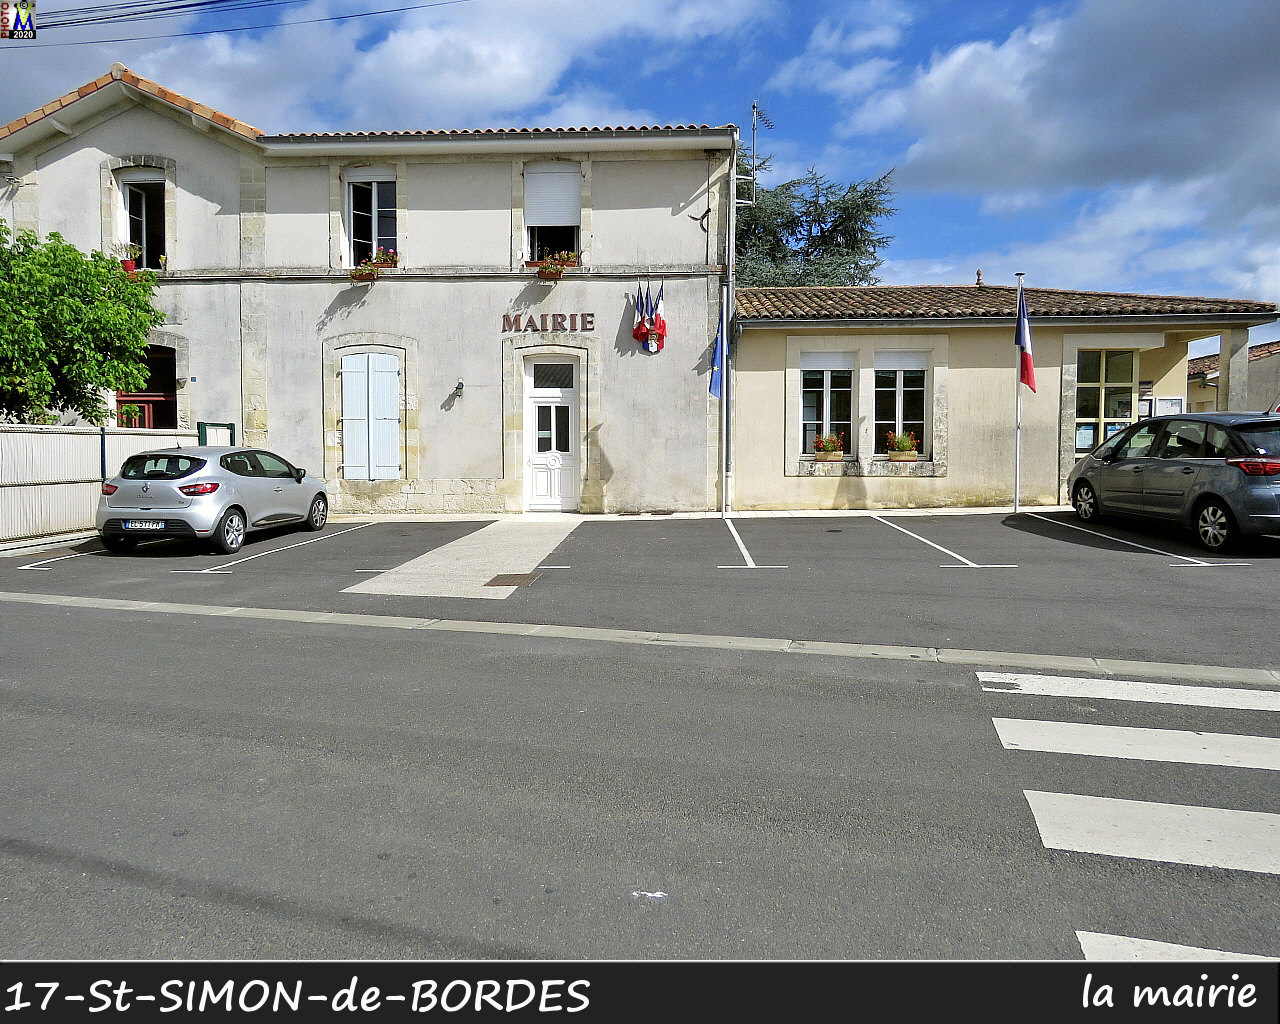 17StSIMON-BORDES_mairie_1000.jpg